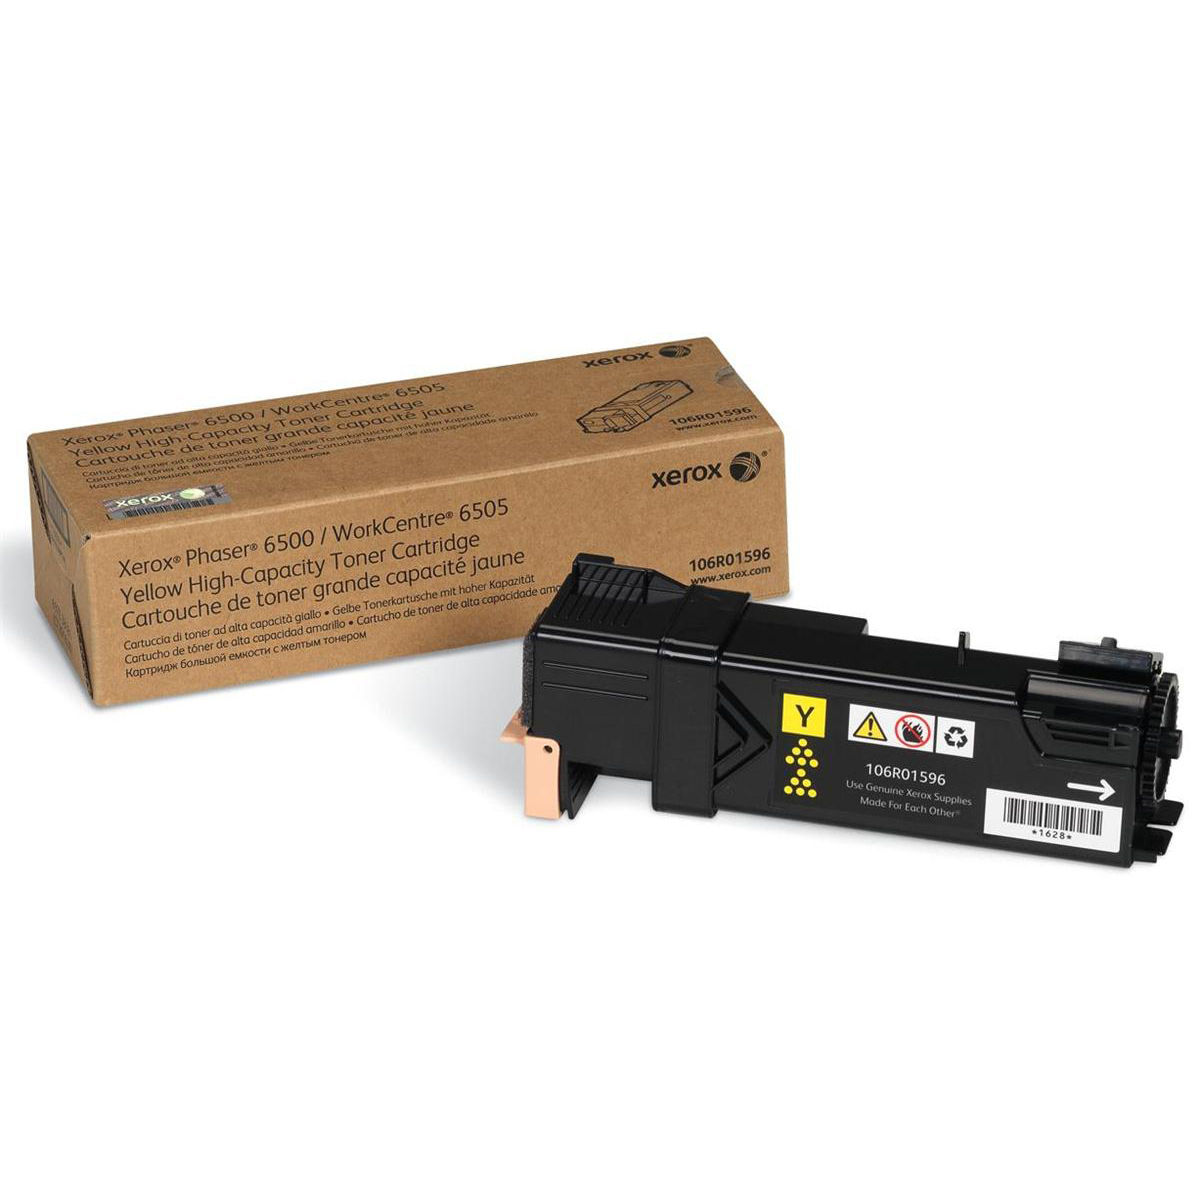 Xerox Phaser 6500 Laser Toner Cartridge High Yield Page Life 2500pp Yellow Ref 106R01596